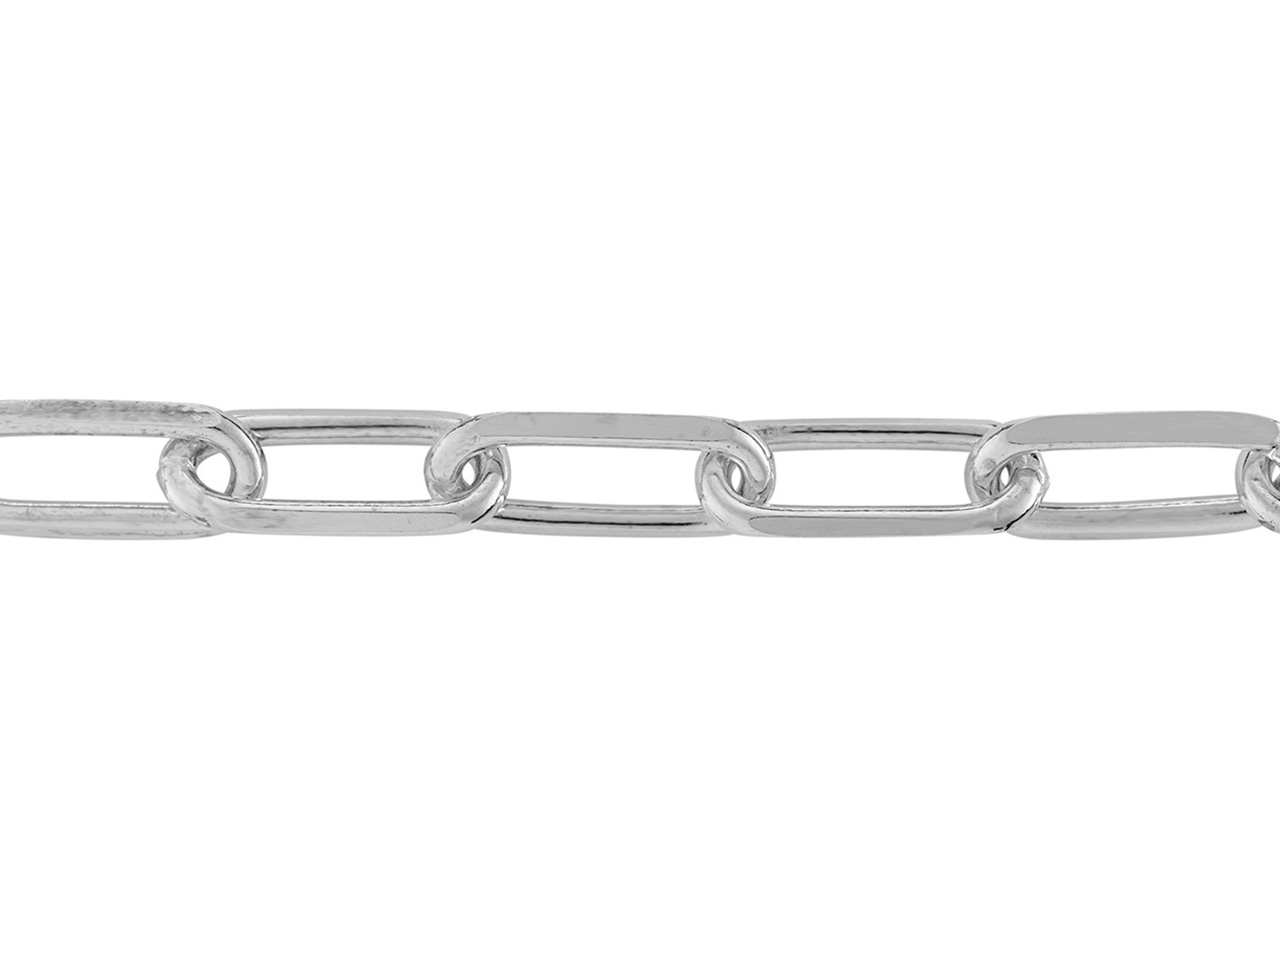 Chaine Argent maille Rectangle, 5 mm. Réf. 10072